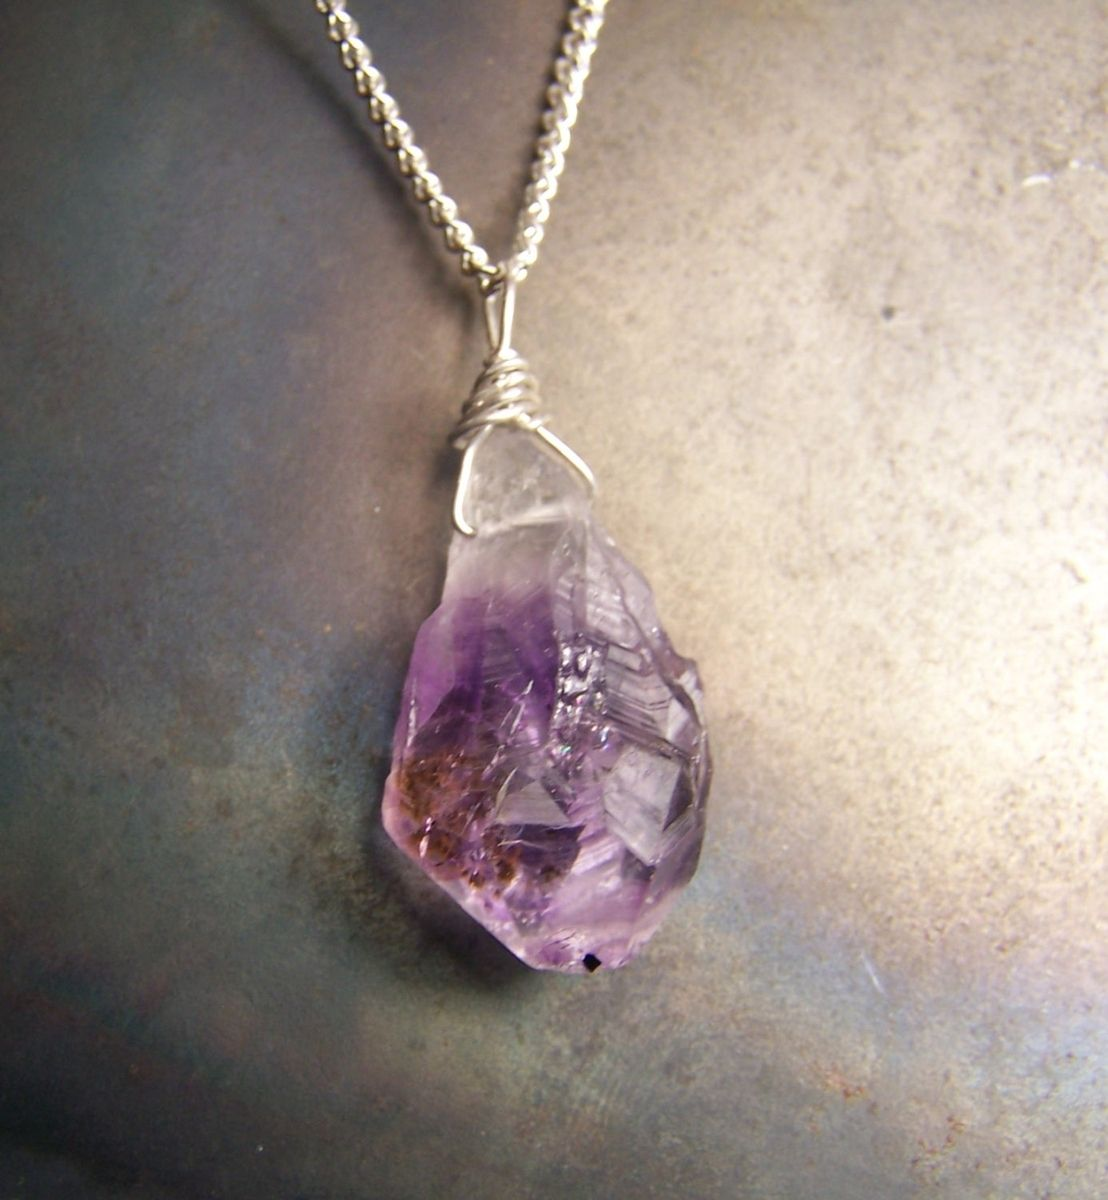 amethyst quartz pendant necklace crystal bullet stone short